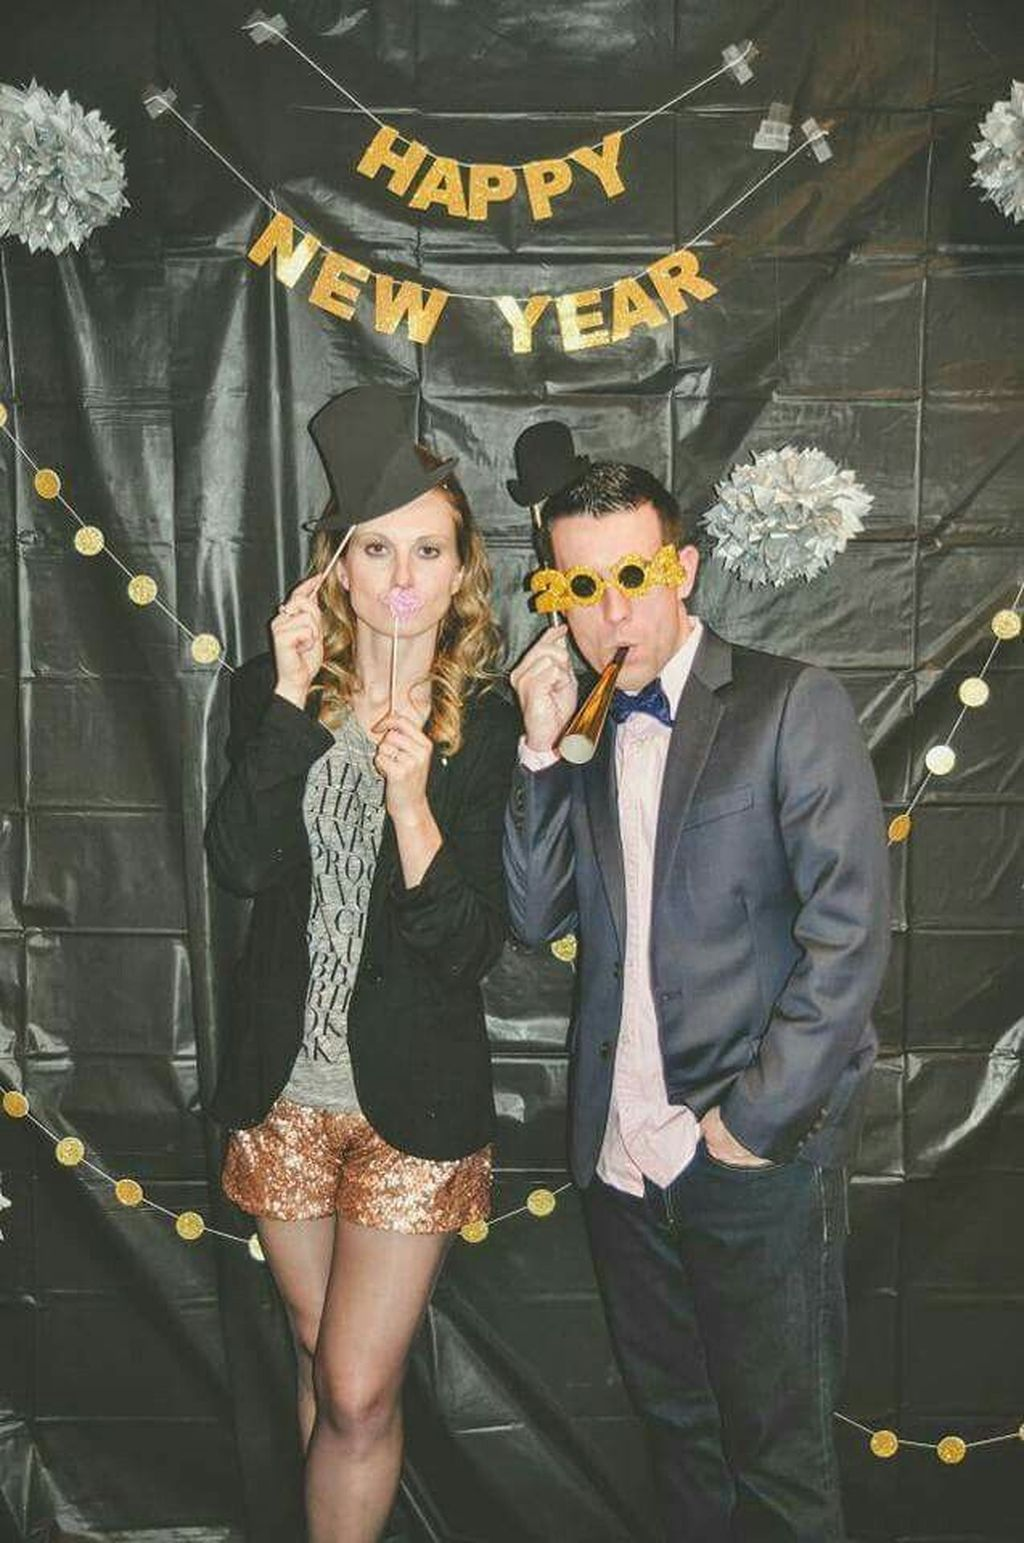 30 Best New Years Eve Decor Ideas For Home Decor Trenduhome New Year S Eve Party Themes New Years Eve Decorations New Year S Eve 2019